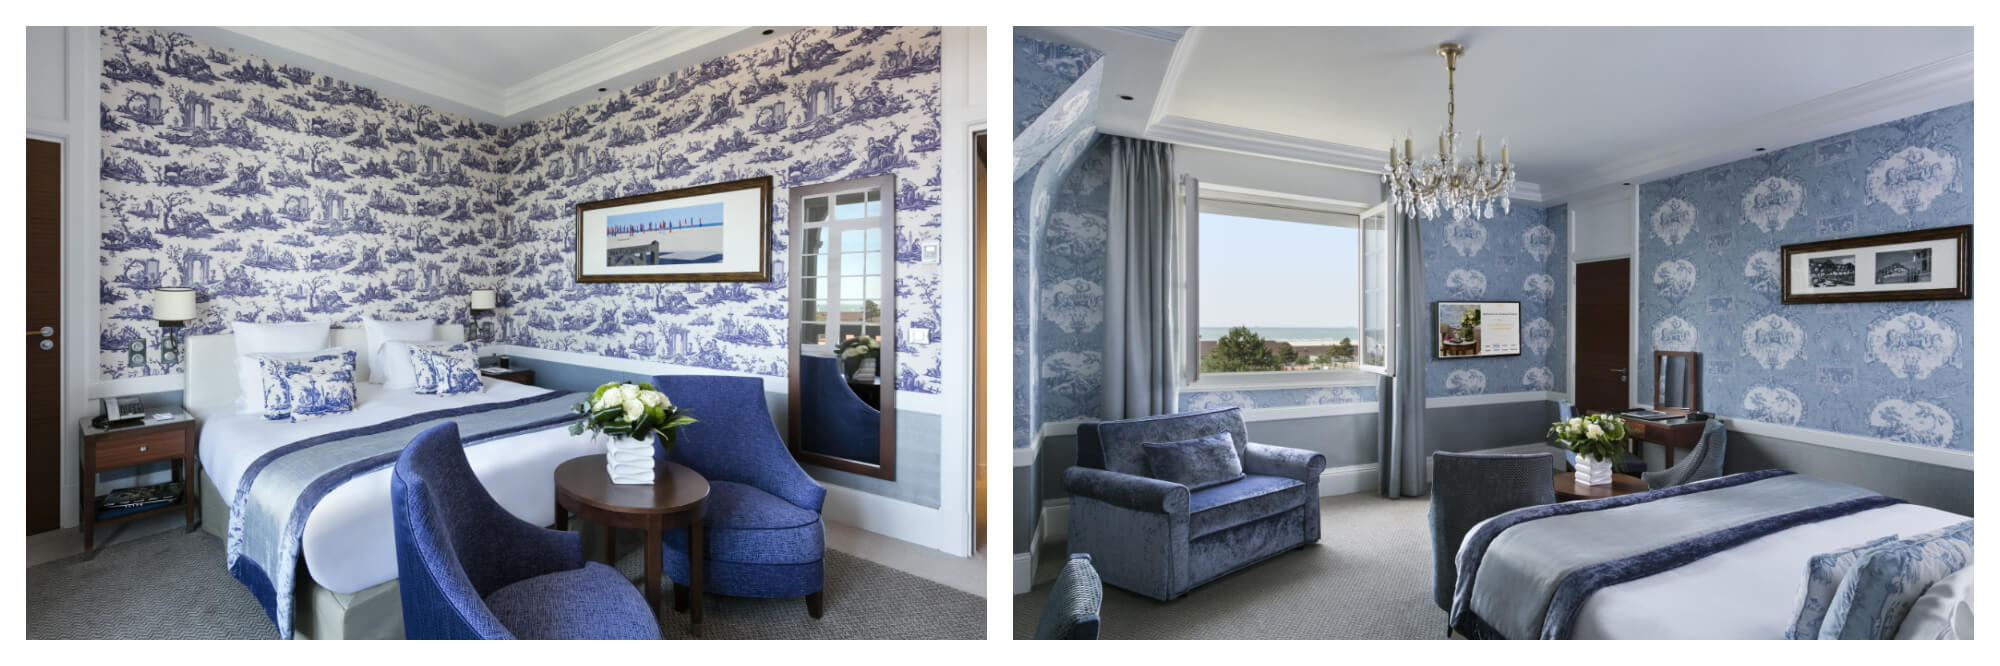 On left: Chic, plush rooms greet guests of Le Normandy, an elegant, glamorous establishment in Deauville which has hosted the likes of Winston Churchill and Coco Chanel. On right: Guests have a view of the sea from the rooms of the Deauvillian establishment Le Normandy, which is equal part elegant with Normand charm.